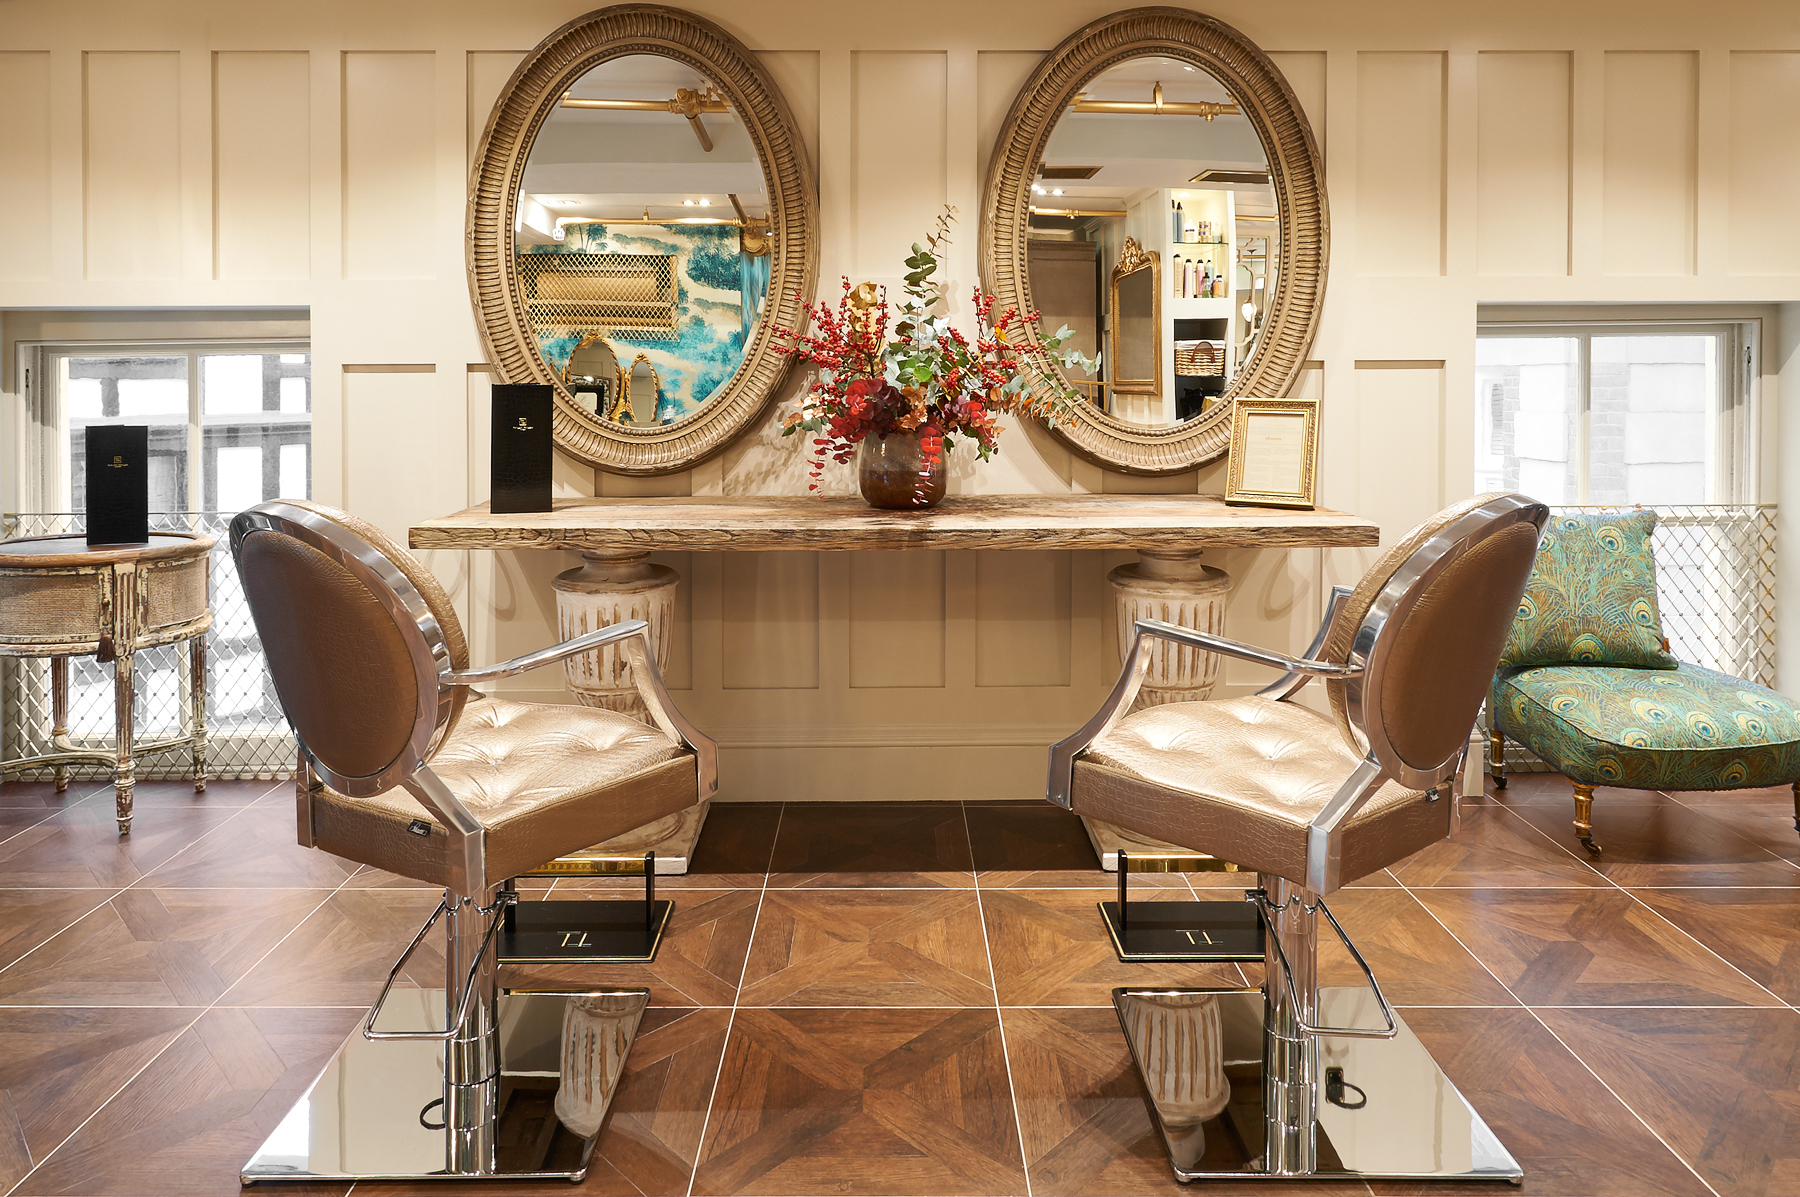 London's best beauty shops